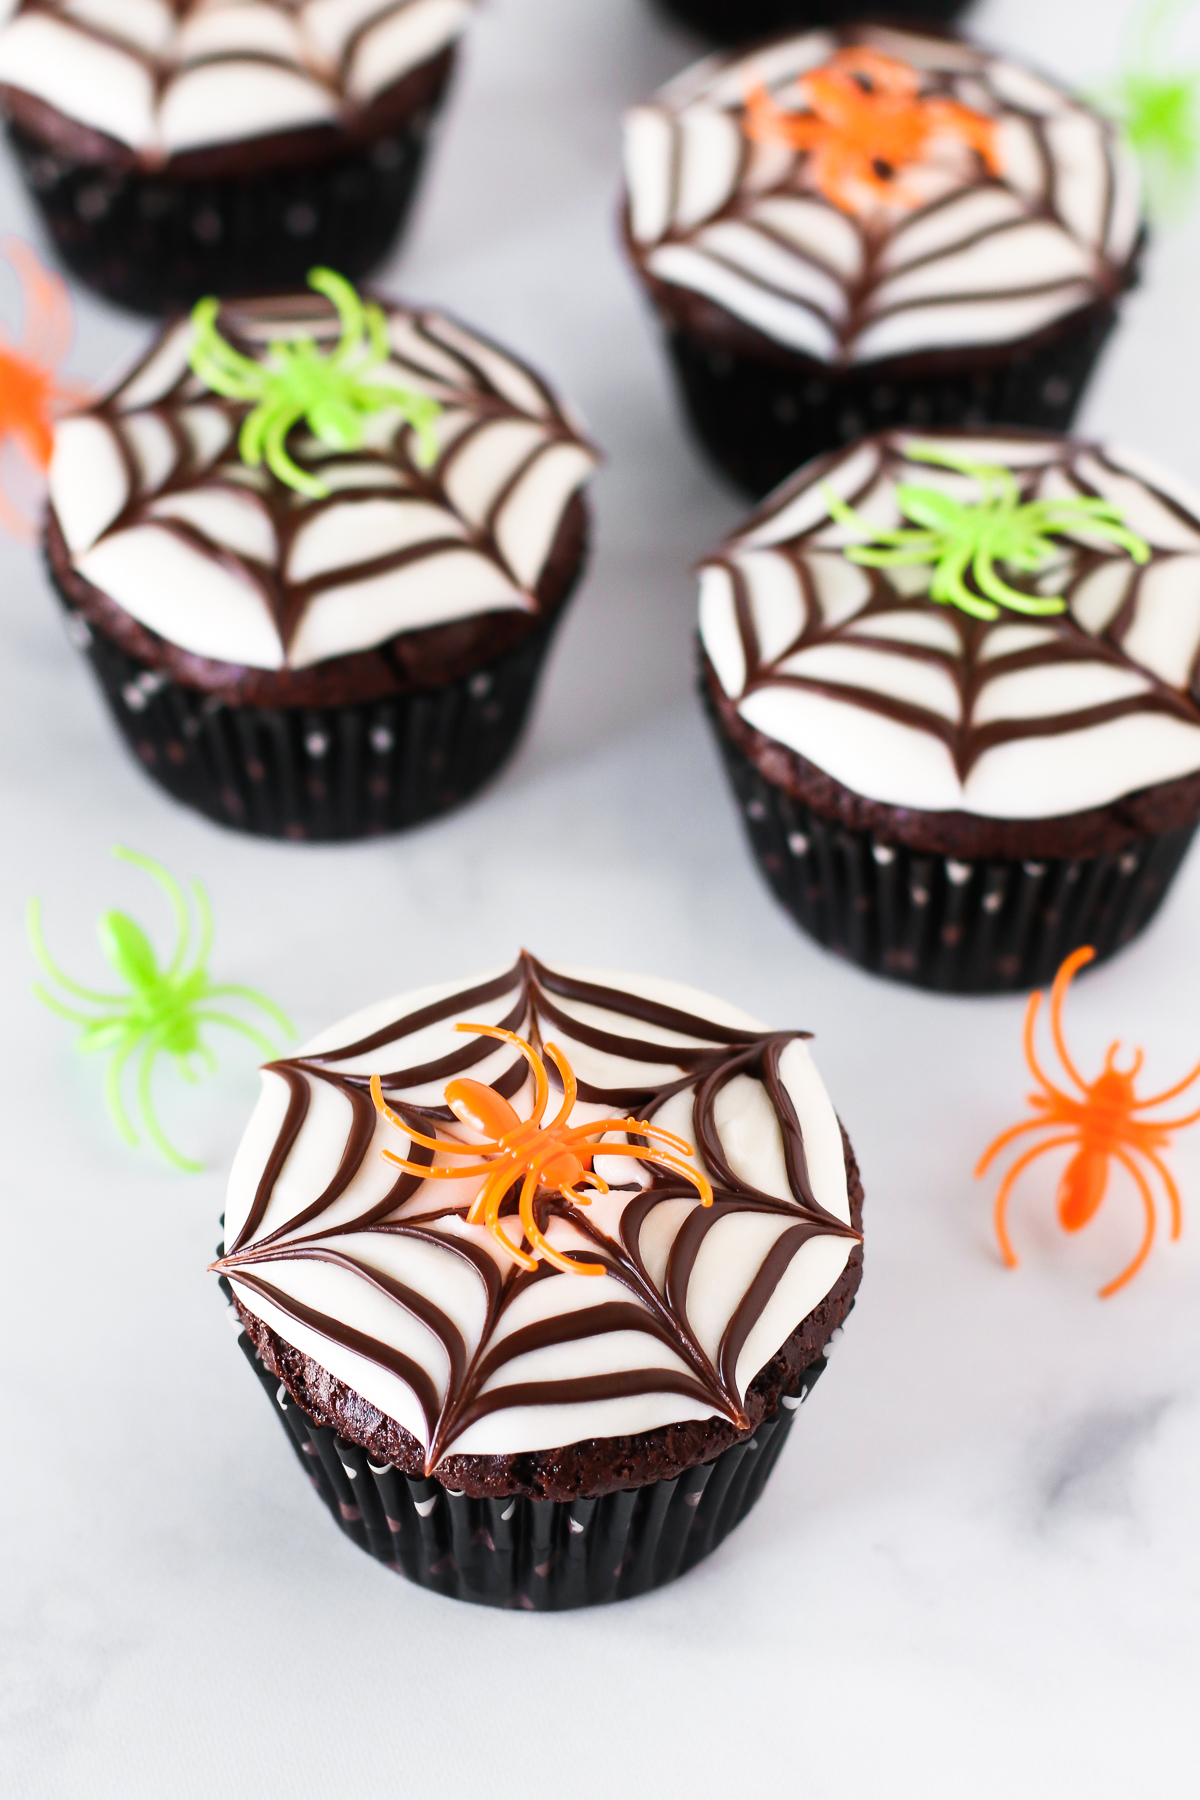 Gluten Free Vegan Chocolate Spiderweb Cookies. The kids won't be able to resist these SPOOKALICIOUS allergen-free cupcakes!